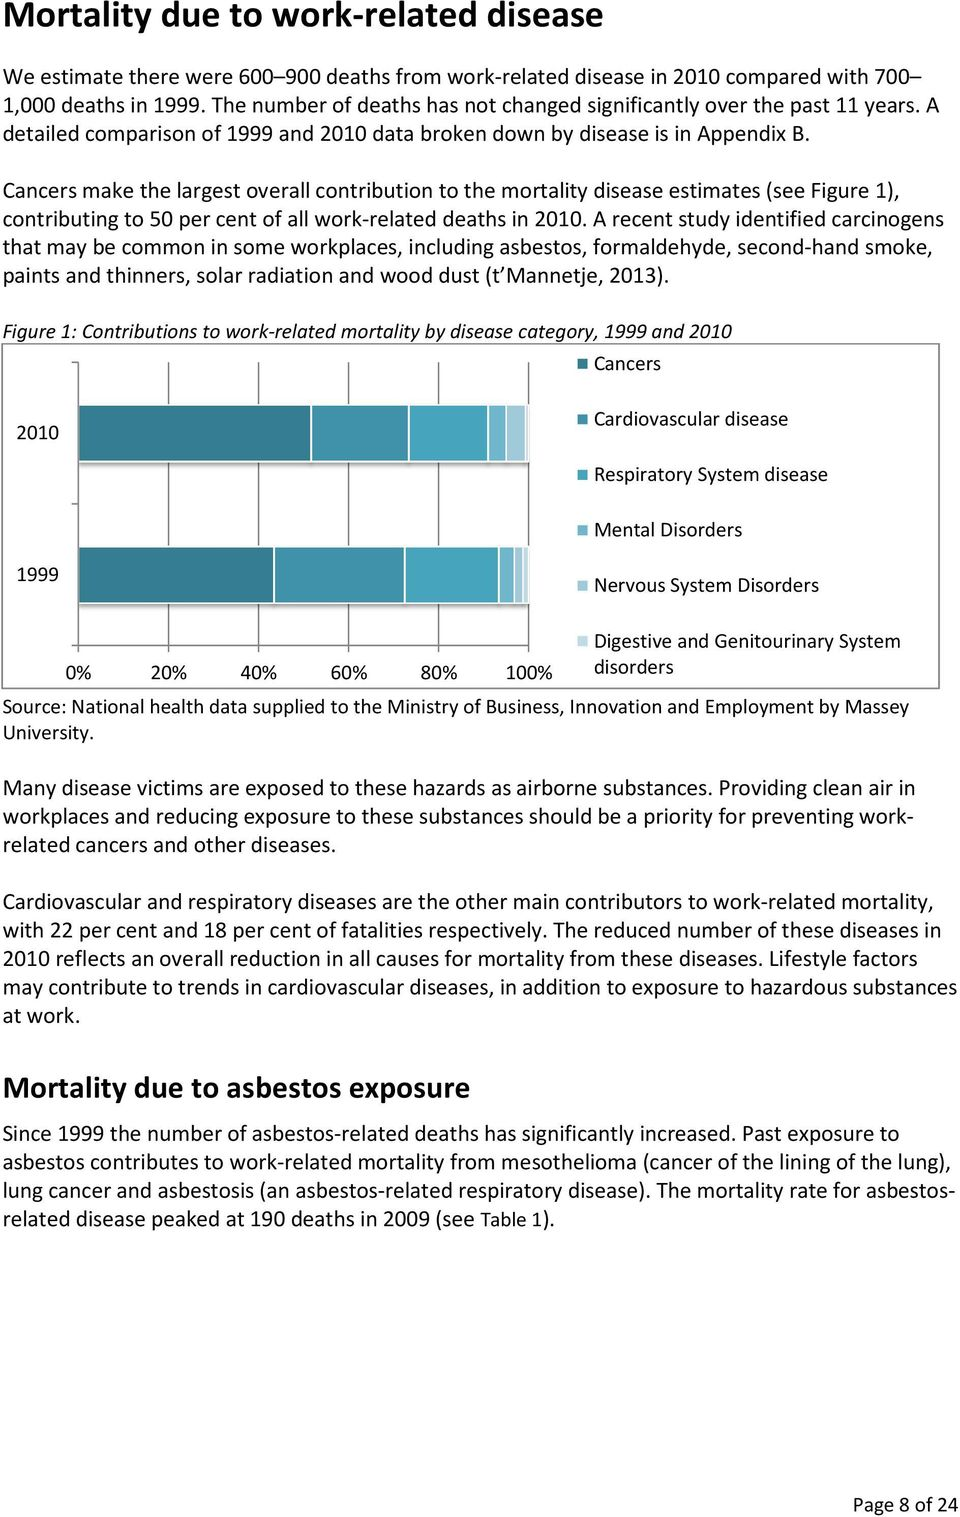 Cancers make the largest overall contribution to the mortality disease estimates (see Figure 1), contributing to 50 per cent of all work-related deaths in 2010.